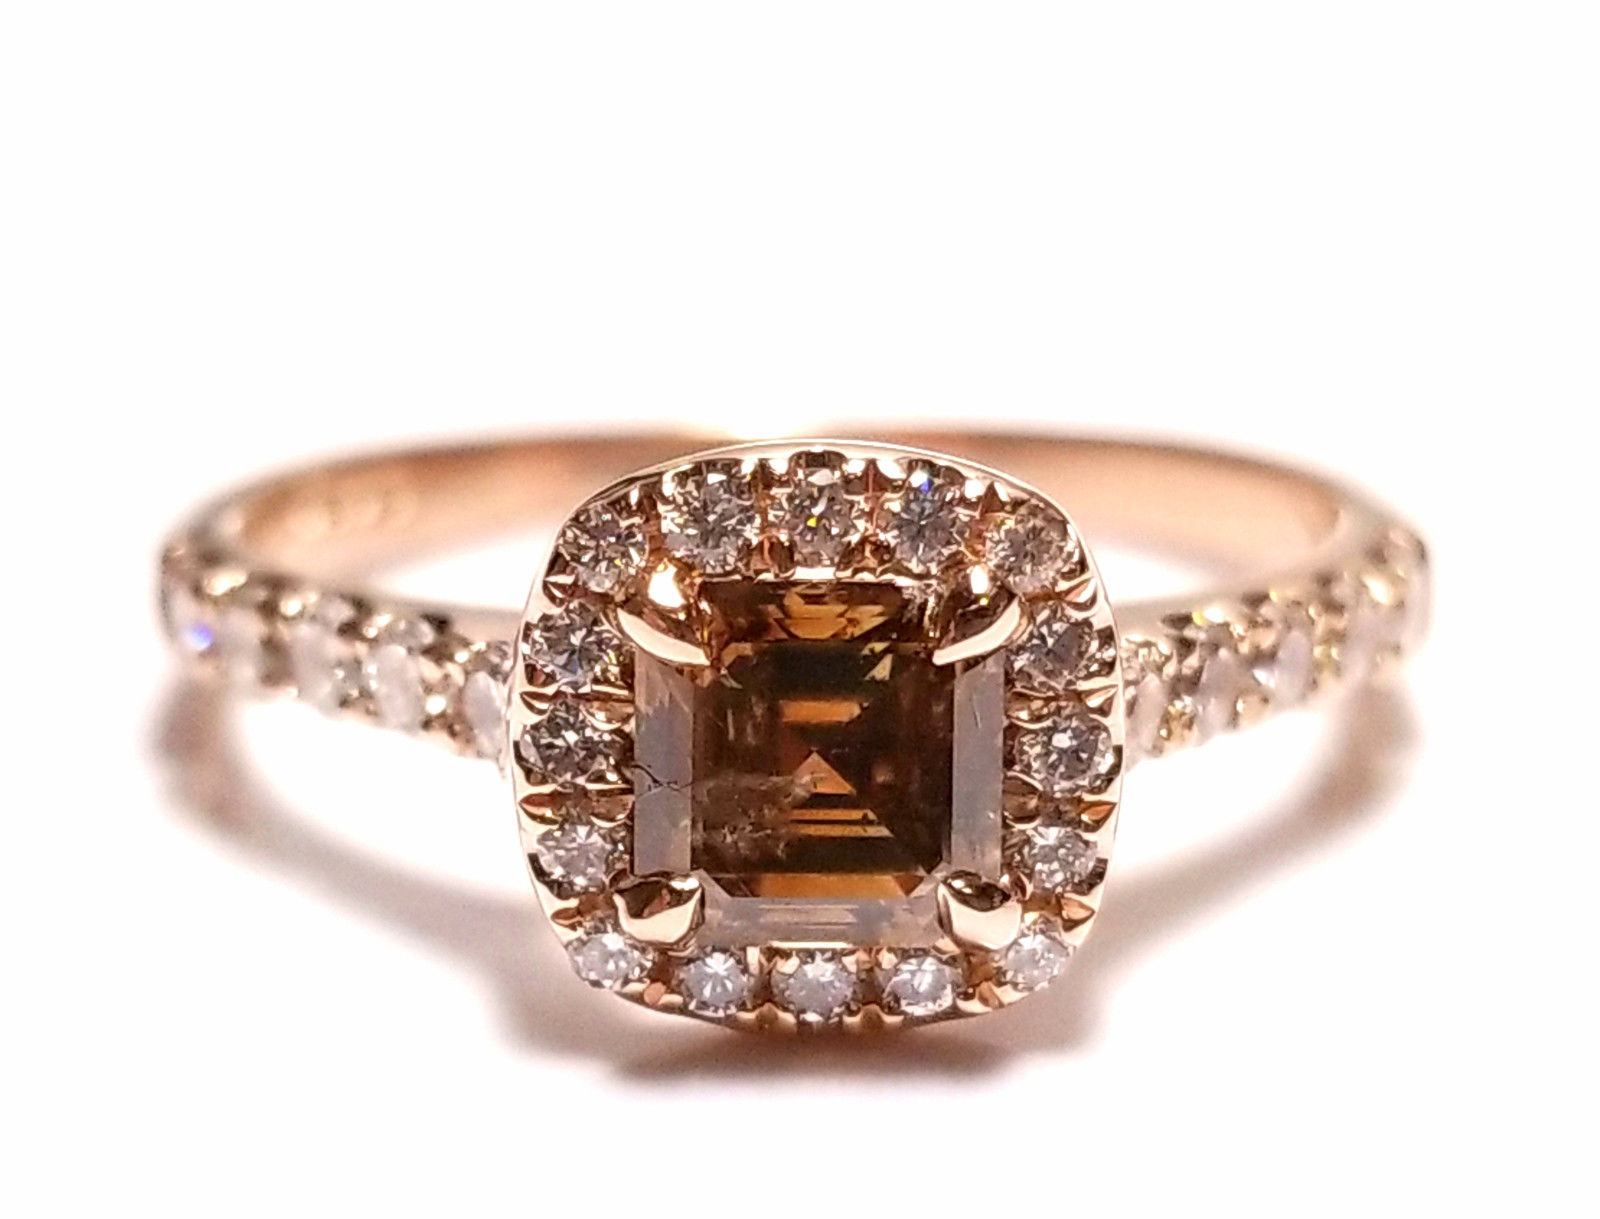 Real 1 08ct Natural Fancy Brown Diamonds Engagement Ring